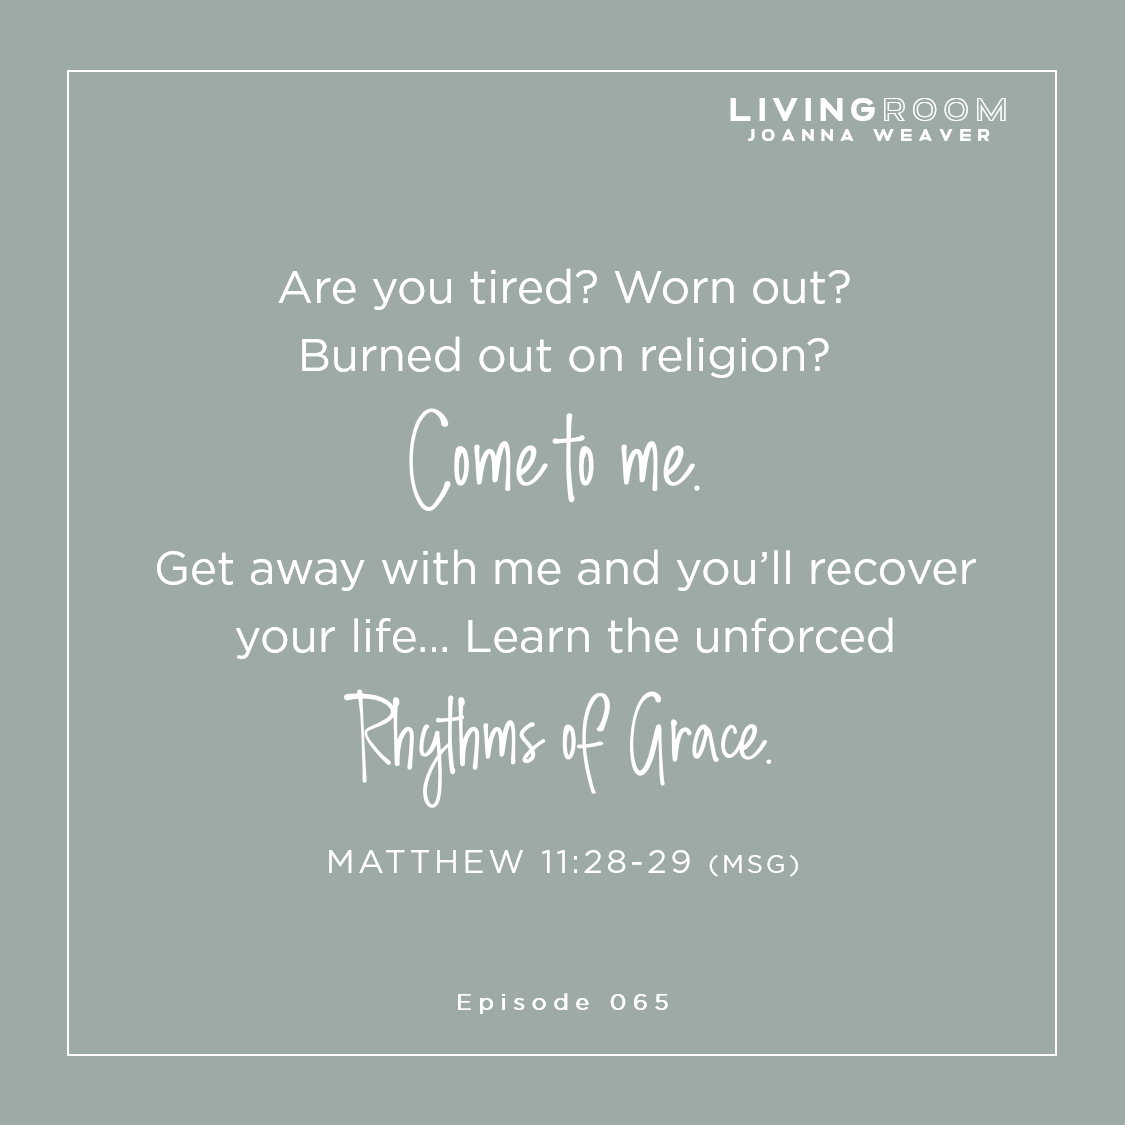 Matthew 11:28-29 - The Living Room Podcast with Joanna Weaver